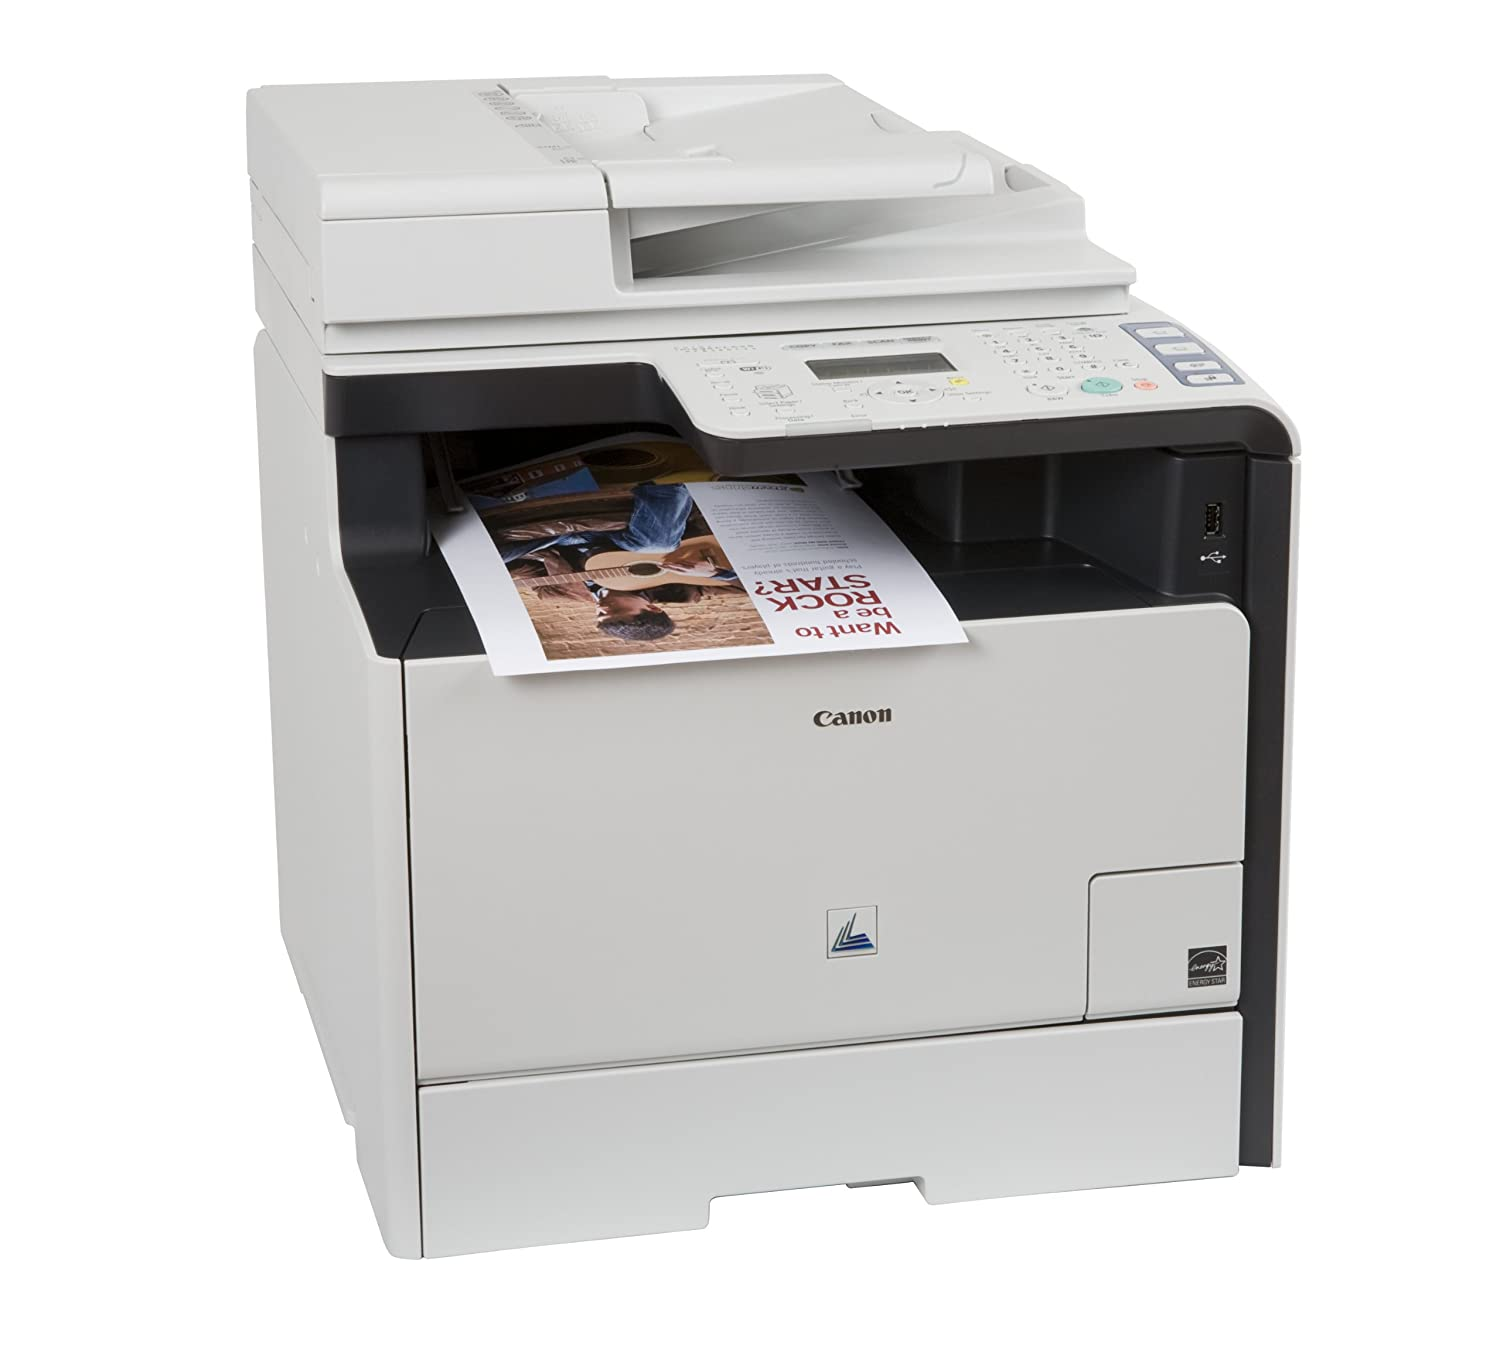 Canon Lasers Color imageCLASS MF8380Cdw Wireless Color Printer with Scanner, Copier and Fax (5120B001AA)